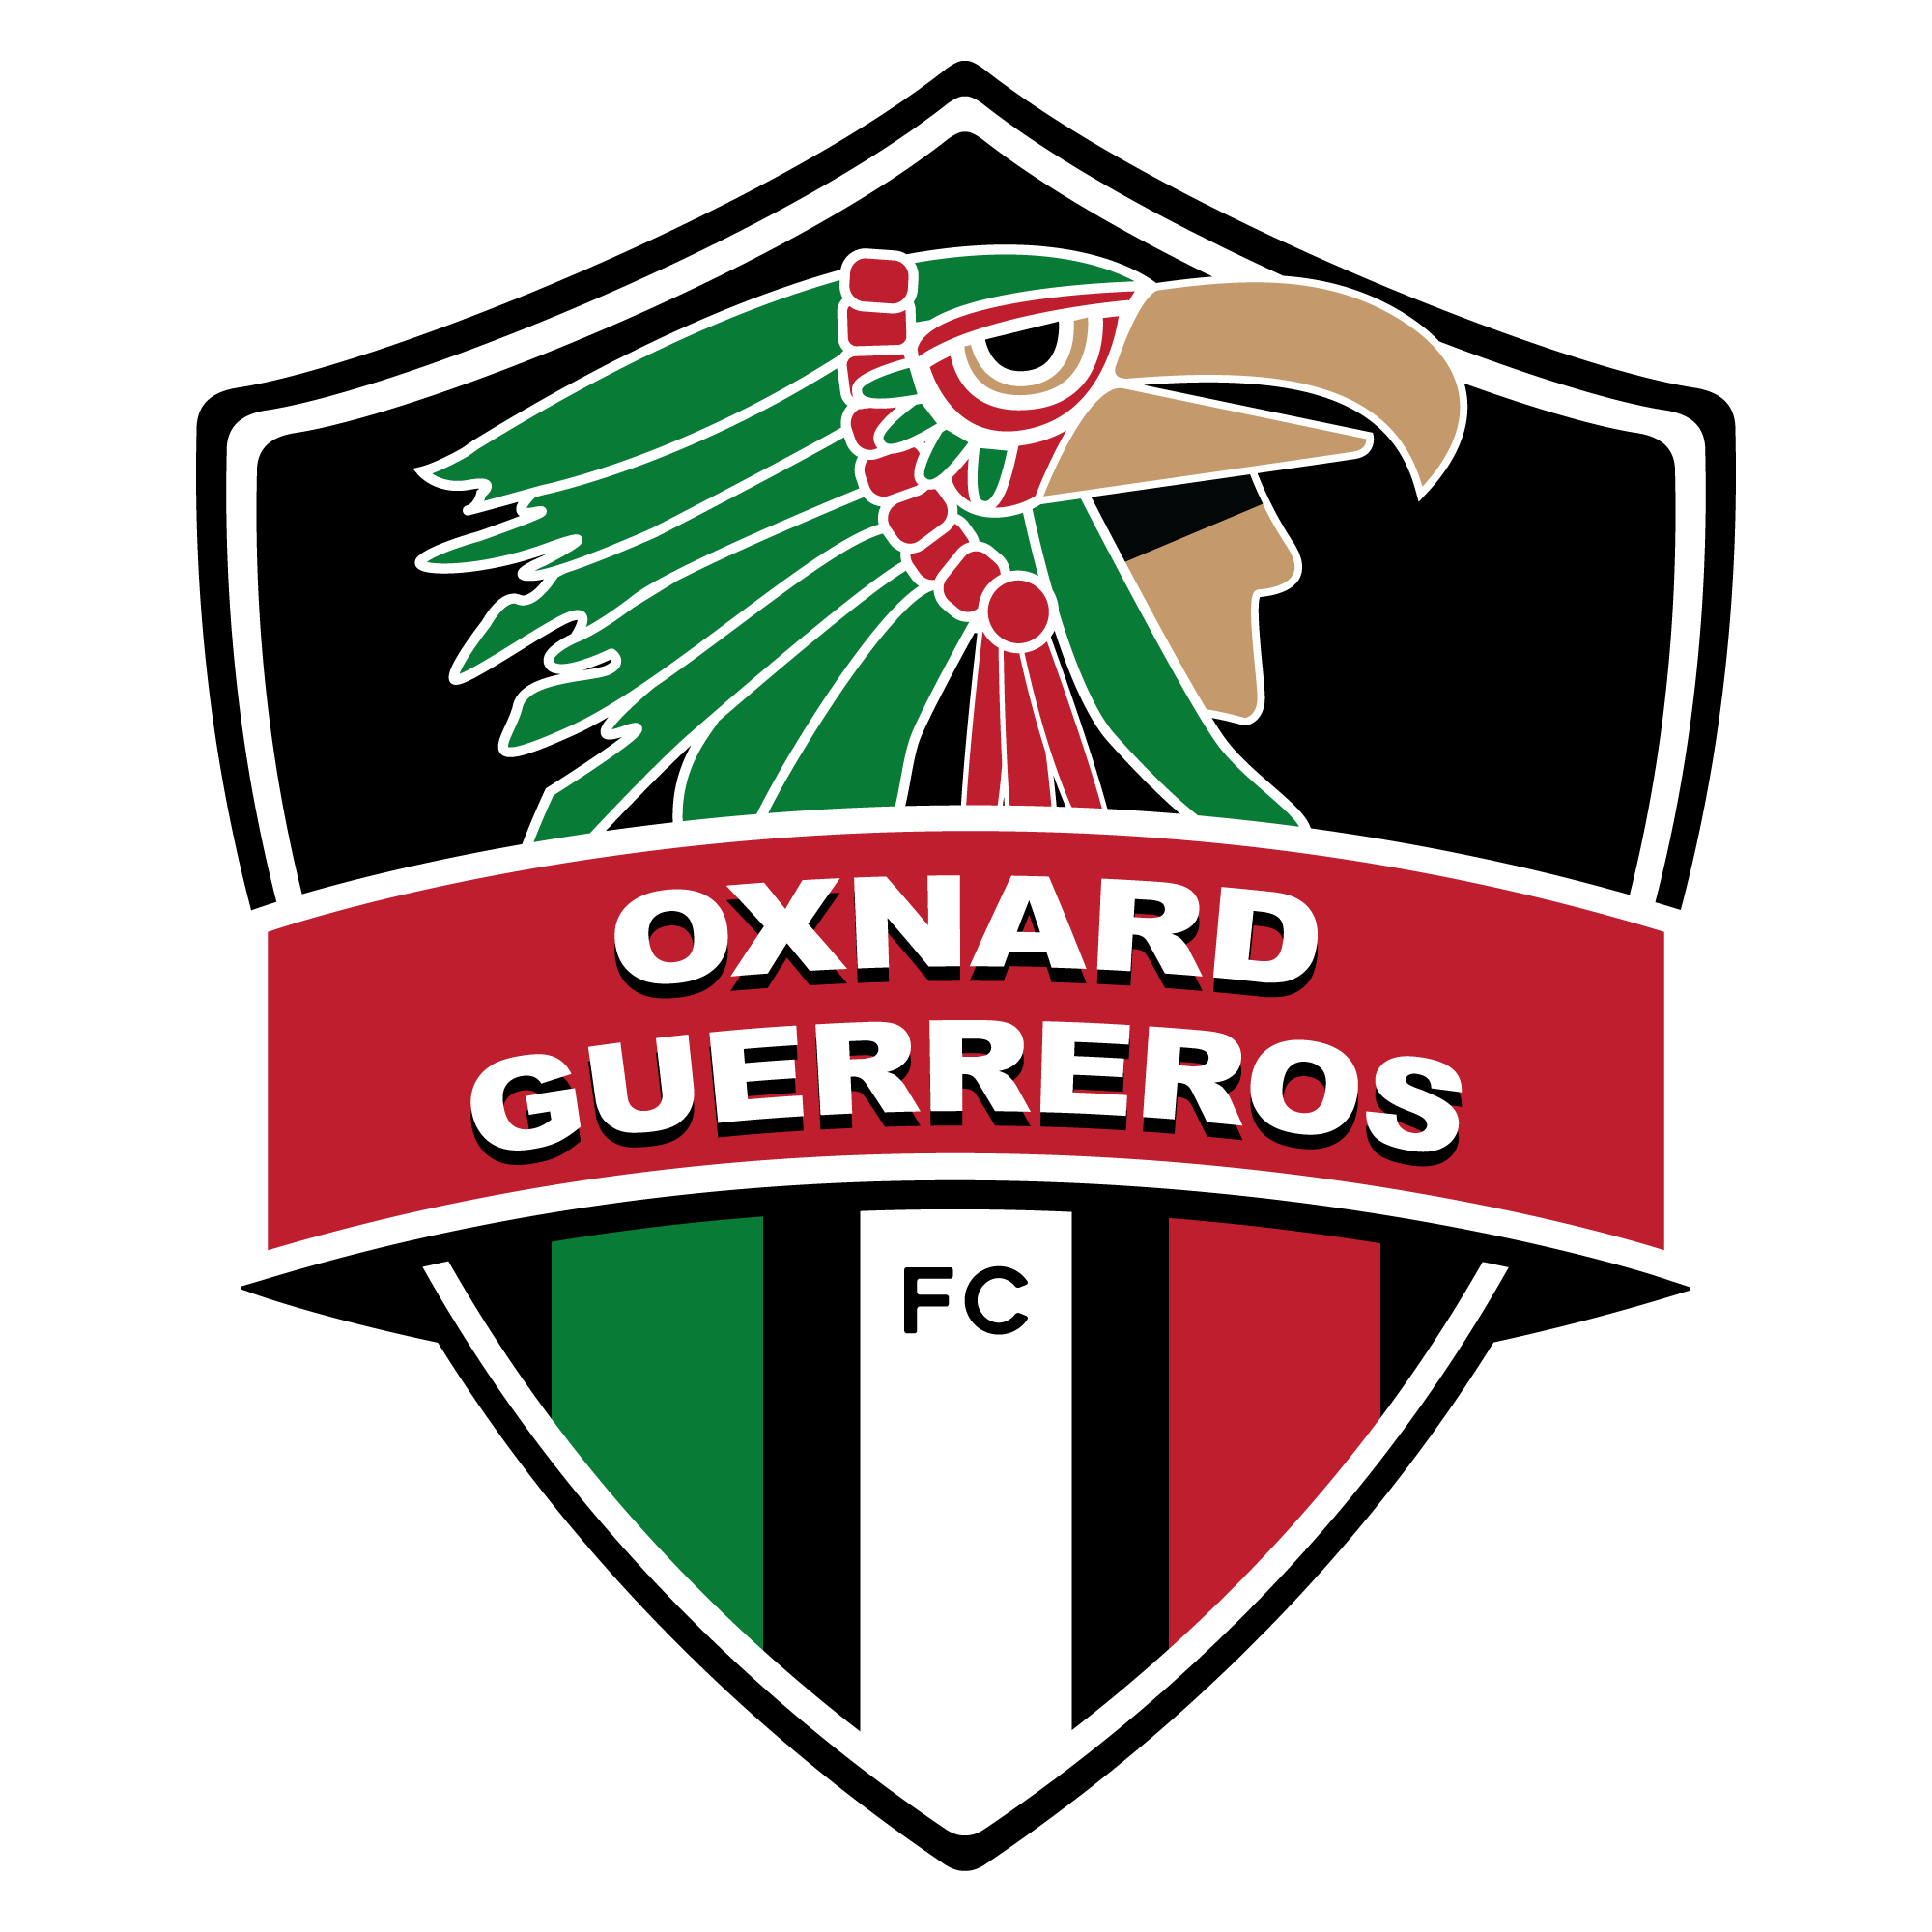 vs. OXNARD GUERREROS